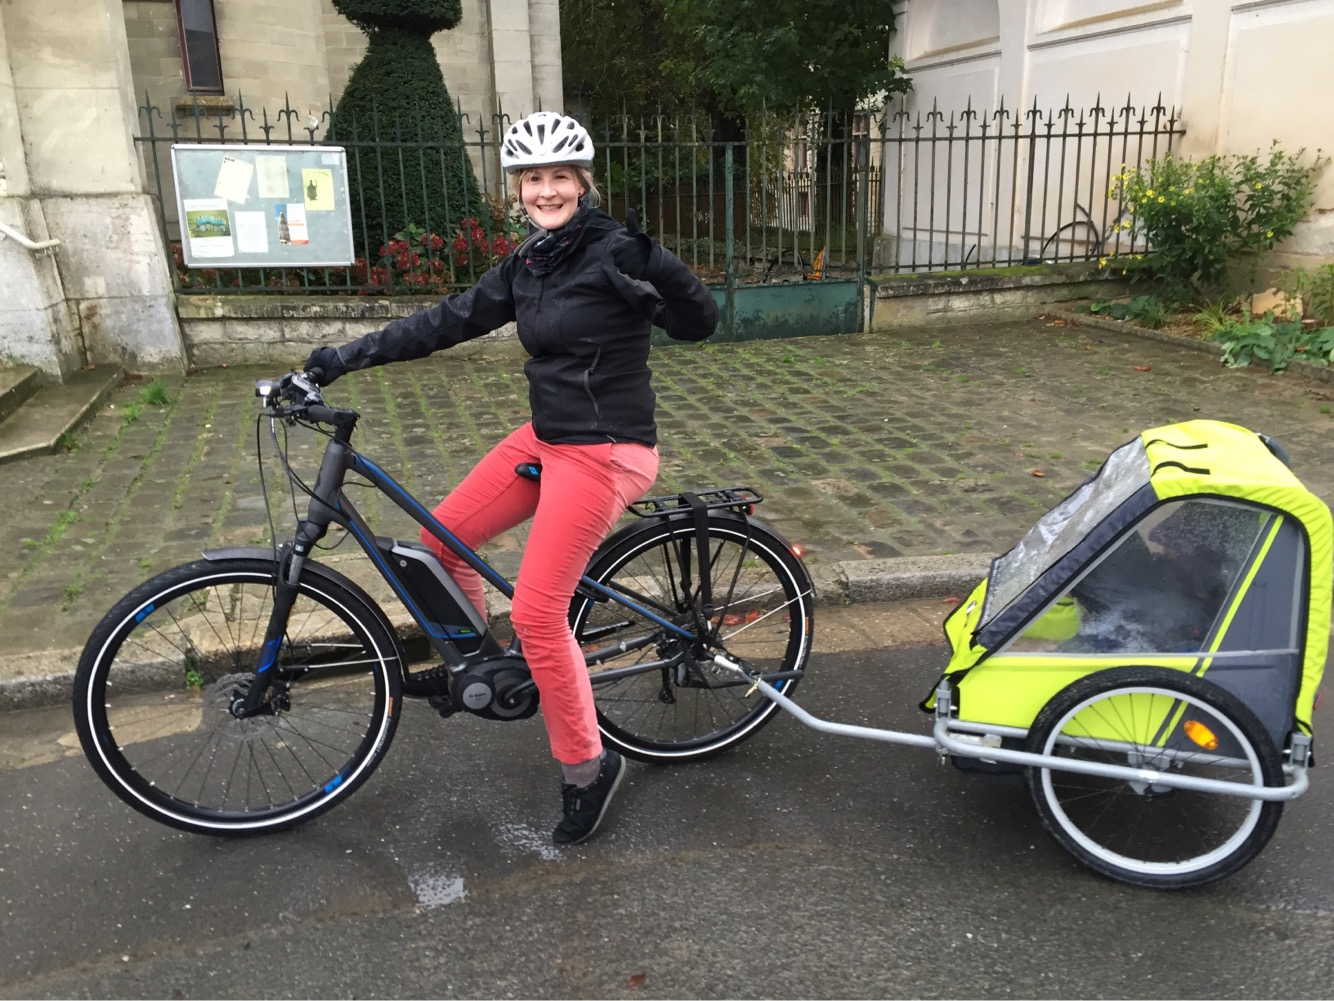 Me after our first (very wet) family ride (20km) - thumbs up! November 2016